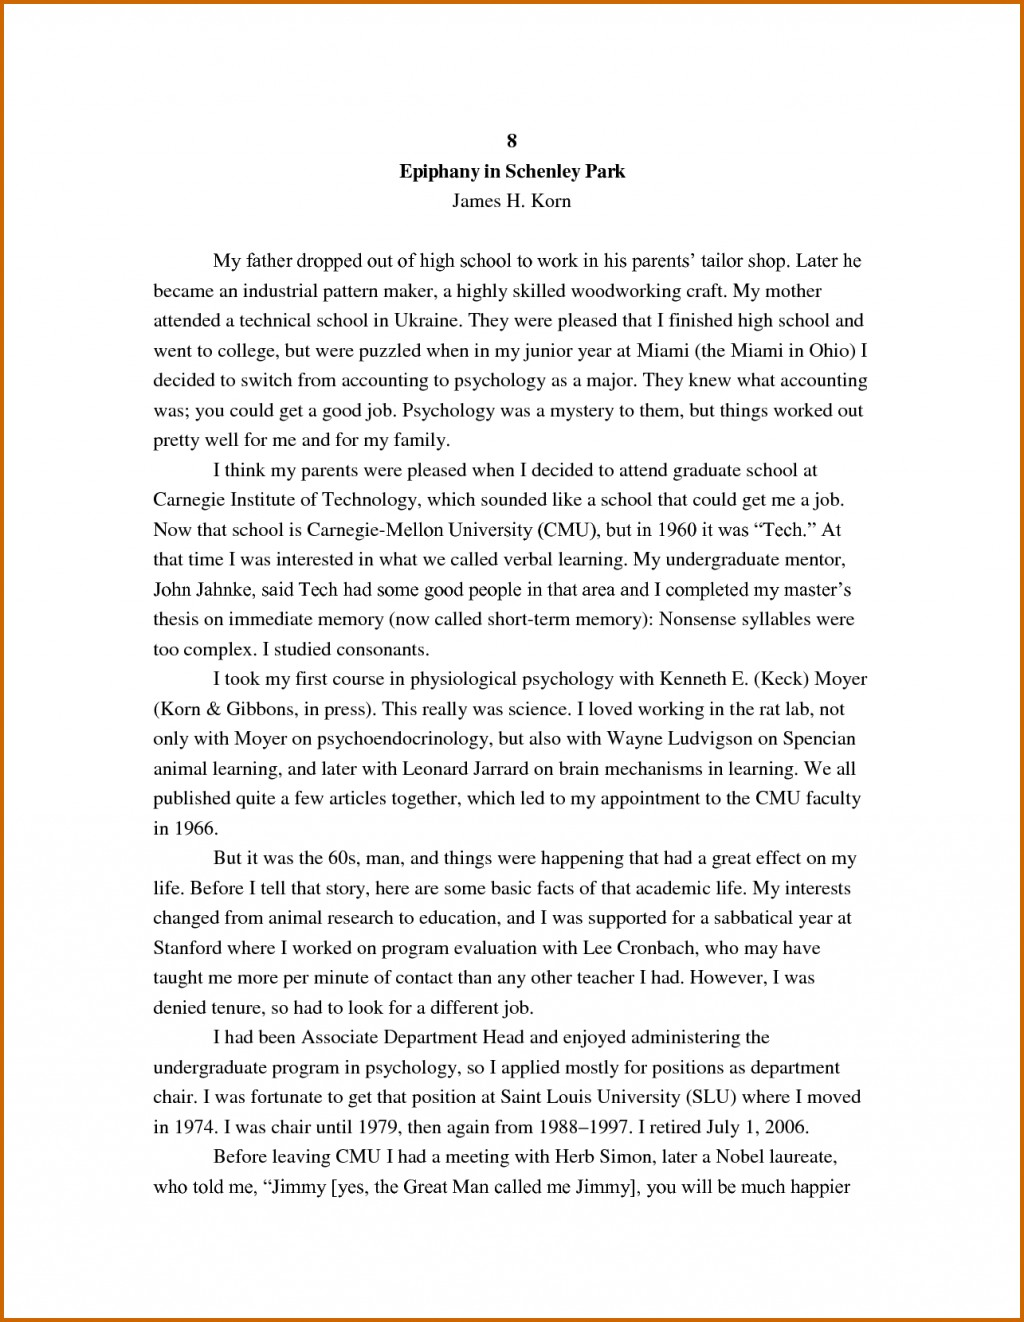 017 How To Write An Autobiographical Essay Autobiography For College Incredible Novel Essays Alexander Chee Graduate School Scholarship Large